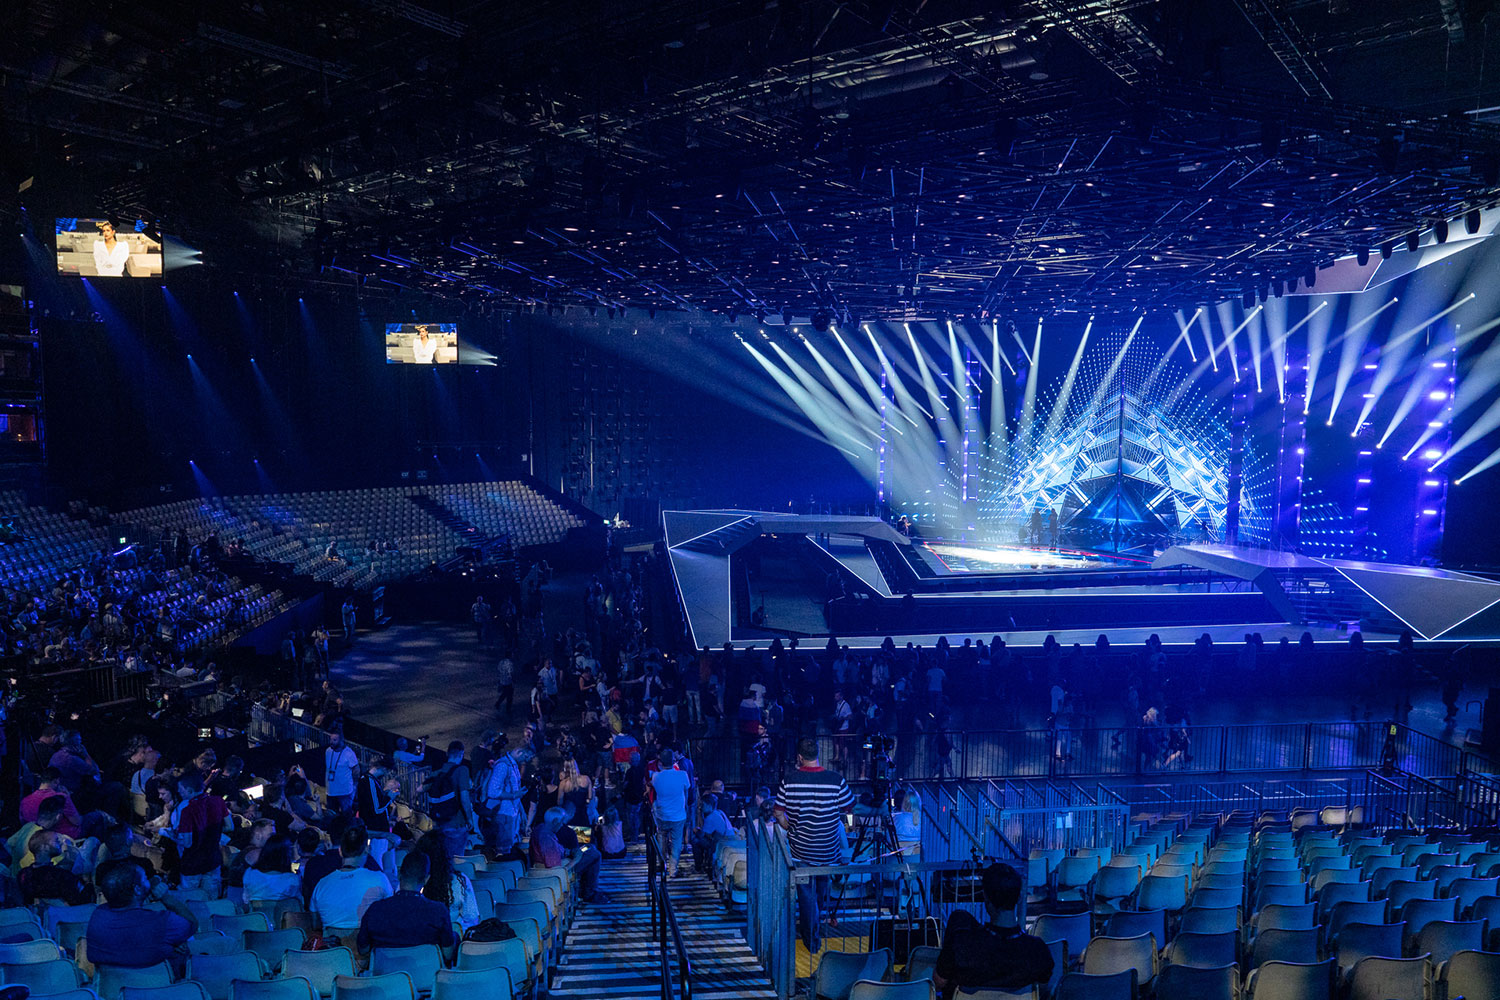 Eurovision 2019 photography